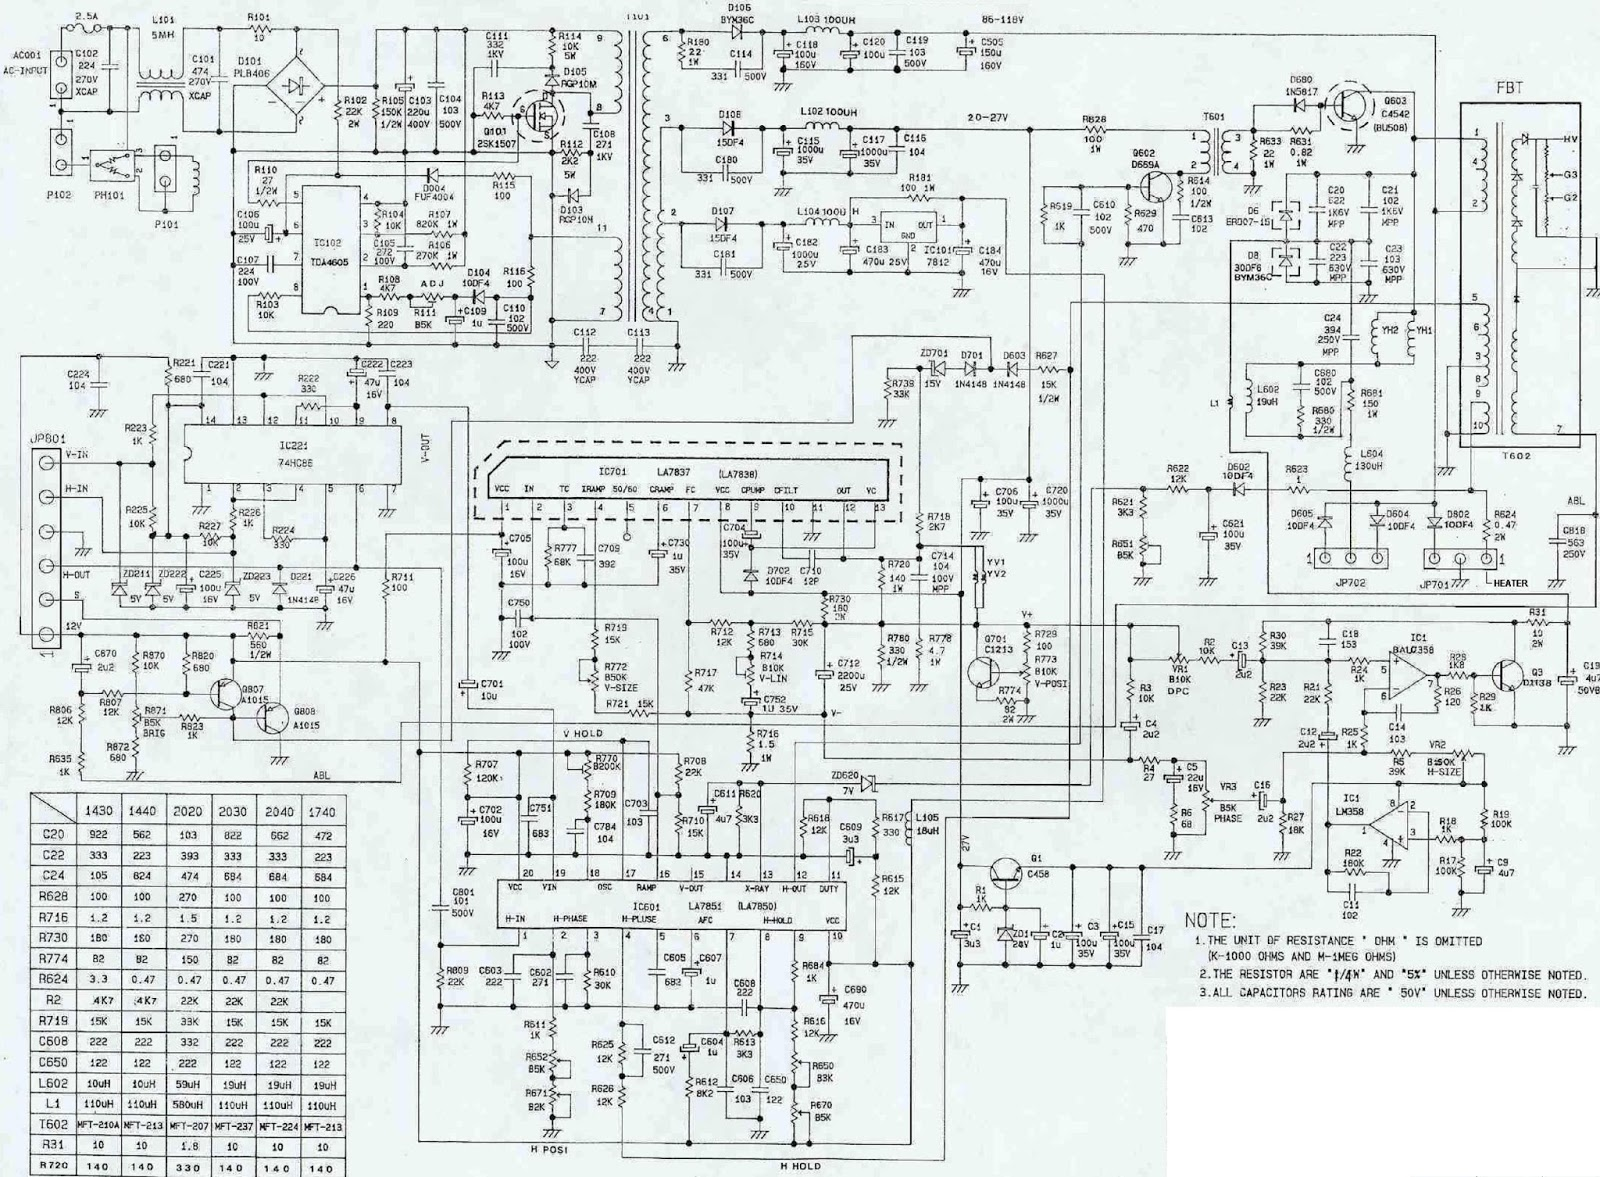 sony schematic diagram simple wiring postwelcome sony playstation 3 schematic diagram sanyo tv schematic diagram schematic [ 1600 x 1177 Pixel ]